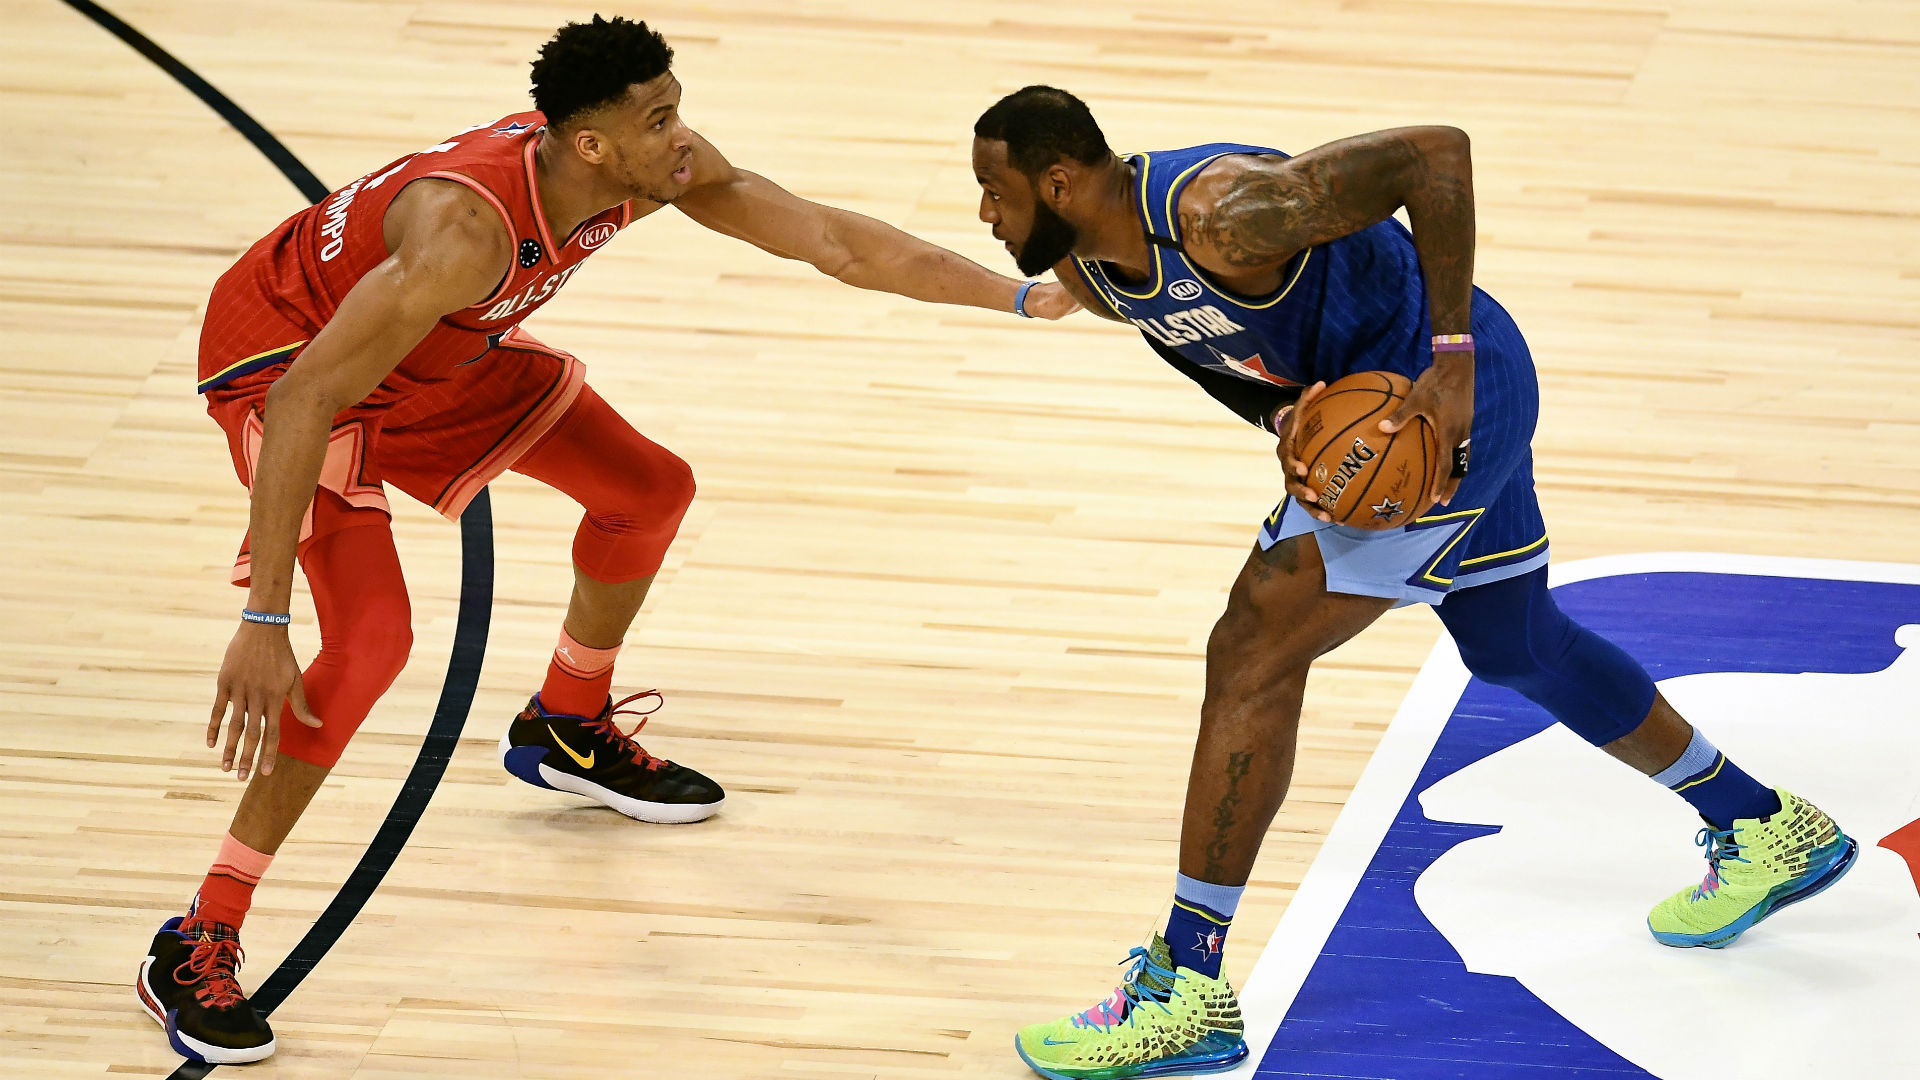 NBA All-Star schedule 2021: Times, TV channels, lineups for Slam Dunk Contest, 3-point Contest, Skills Challenge